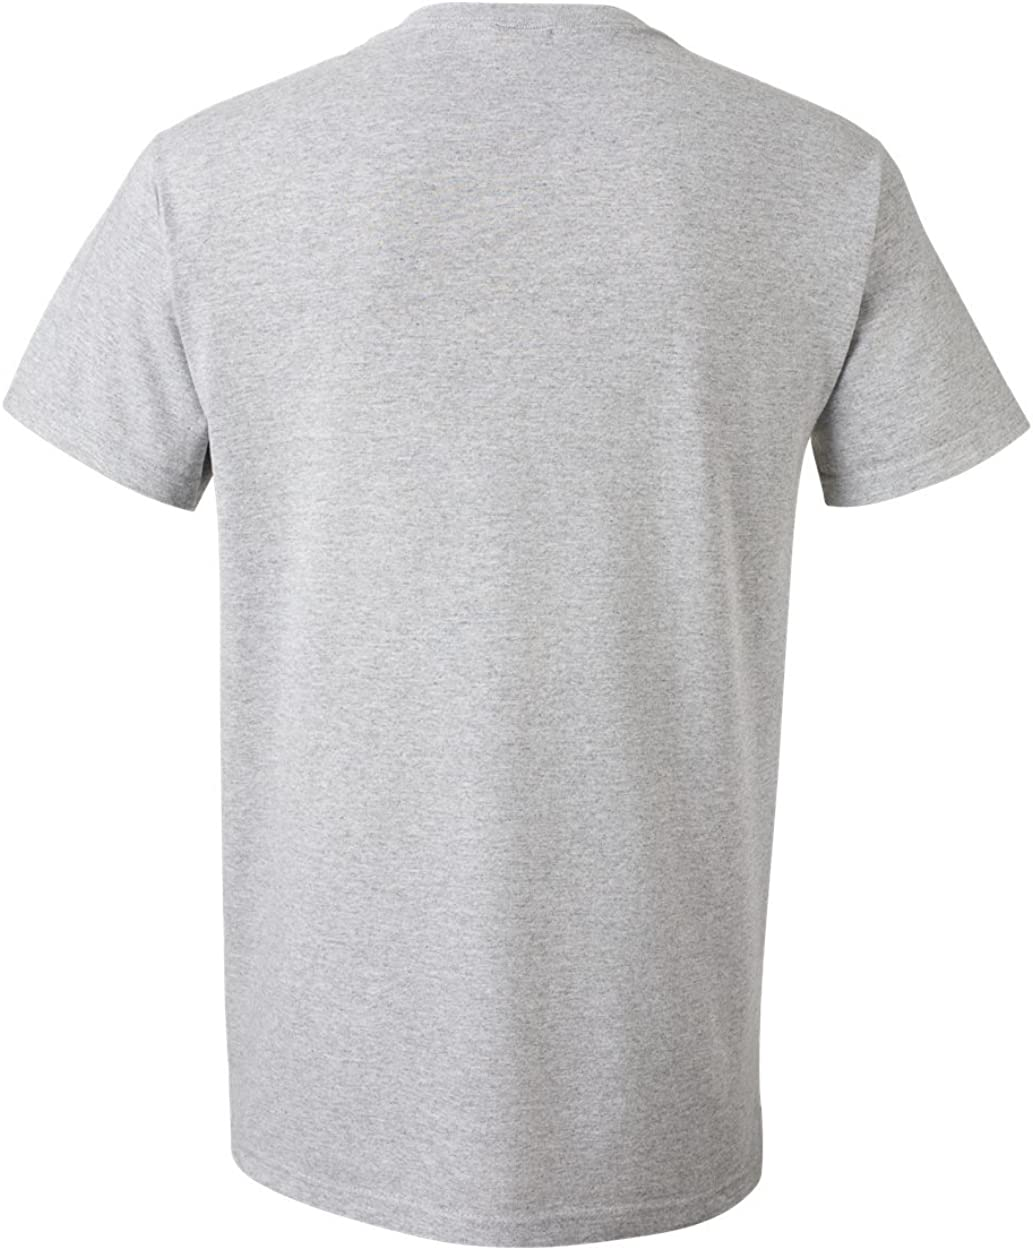 CORONA EXTRA  T SHIRTS 100/% COTTON  GRAPHIC NEW XL MENS FRUIT OF THE LOOM